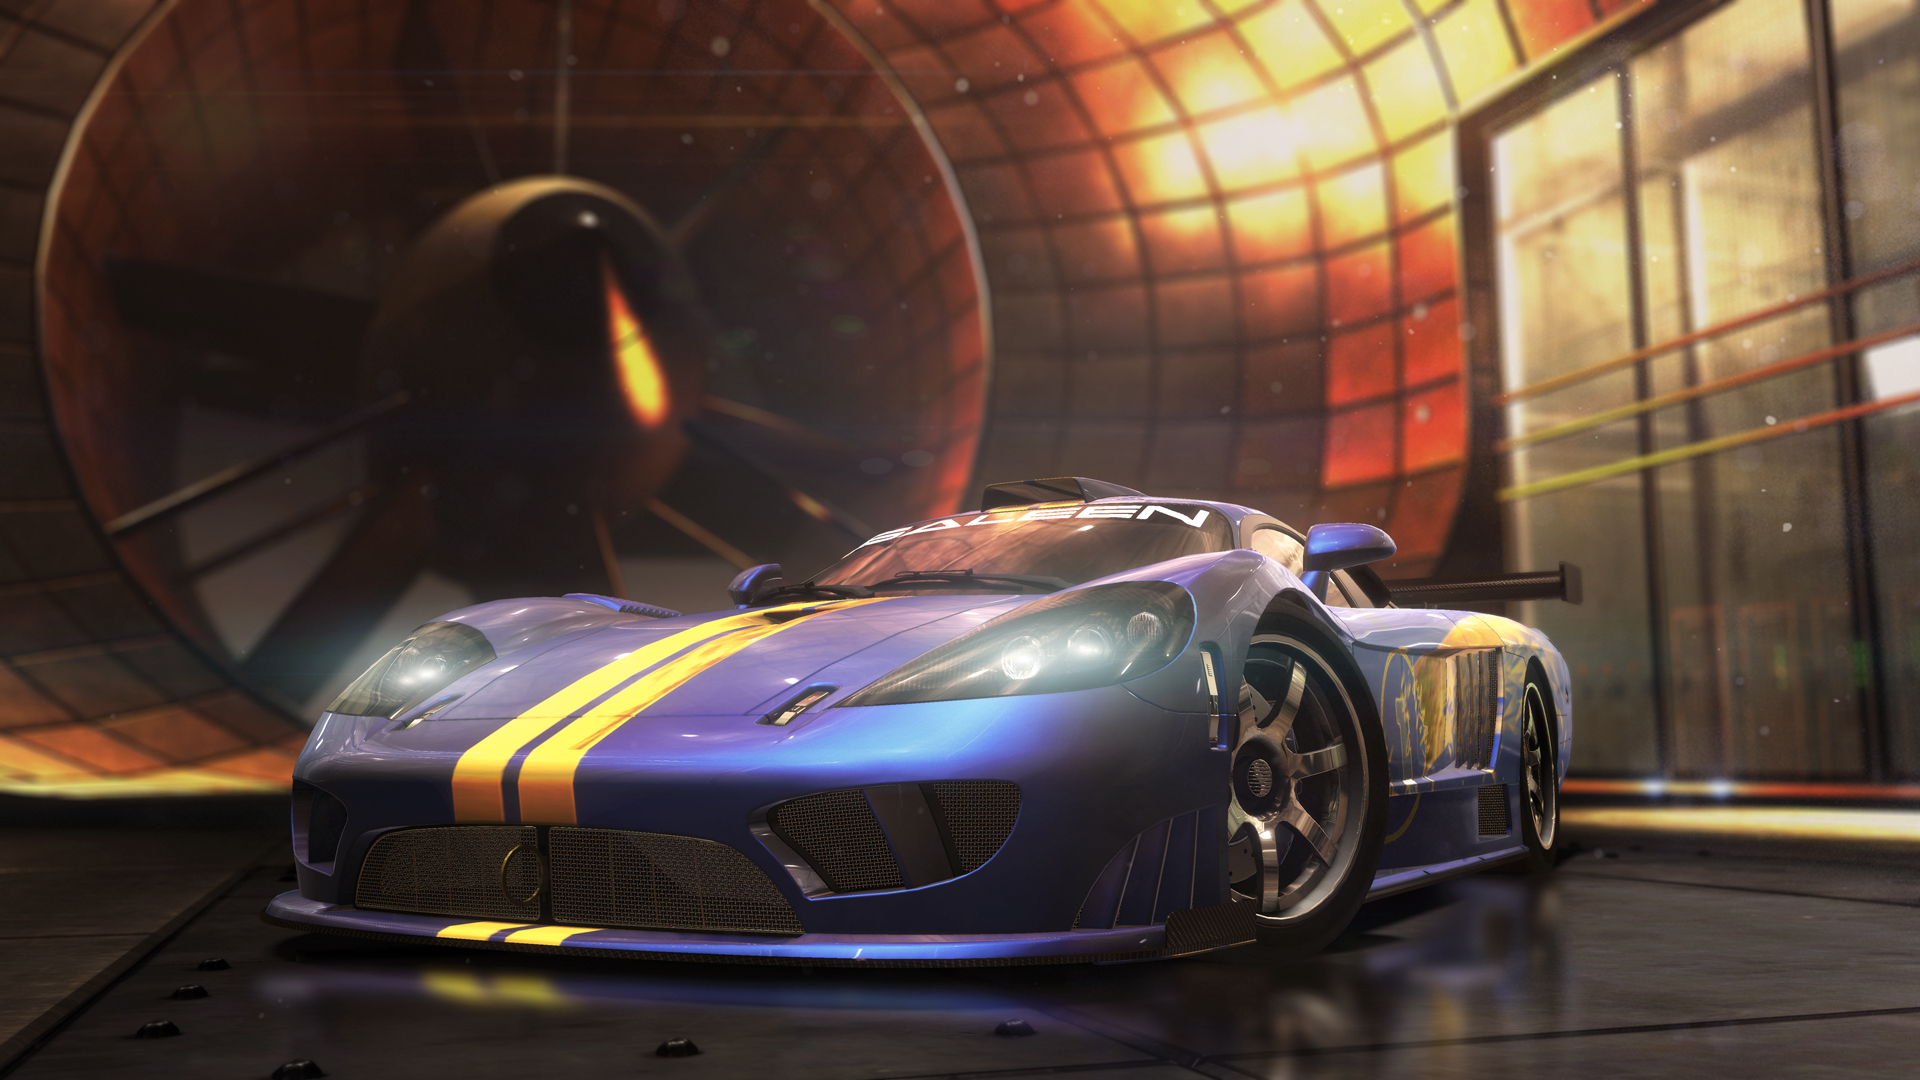 TC_render_DLC_SALEEN_S7_TWIN-TURBO_RACE_150212